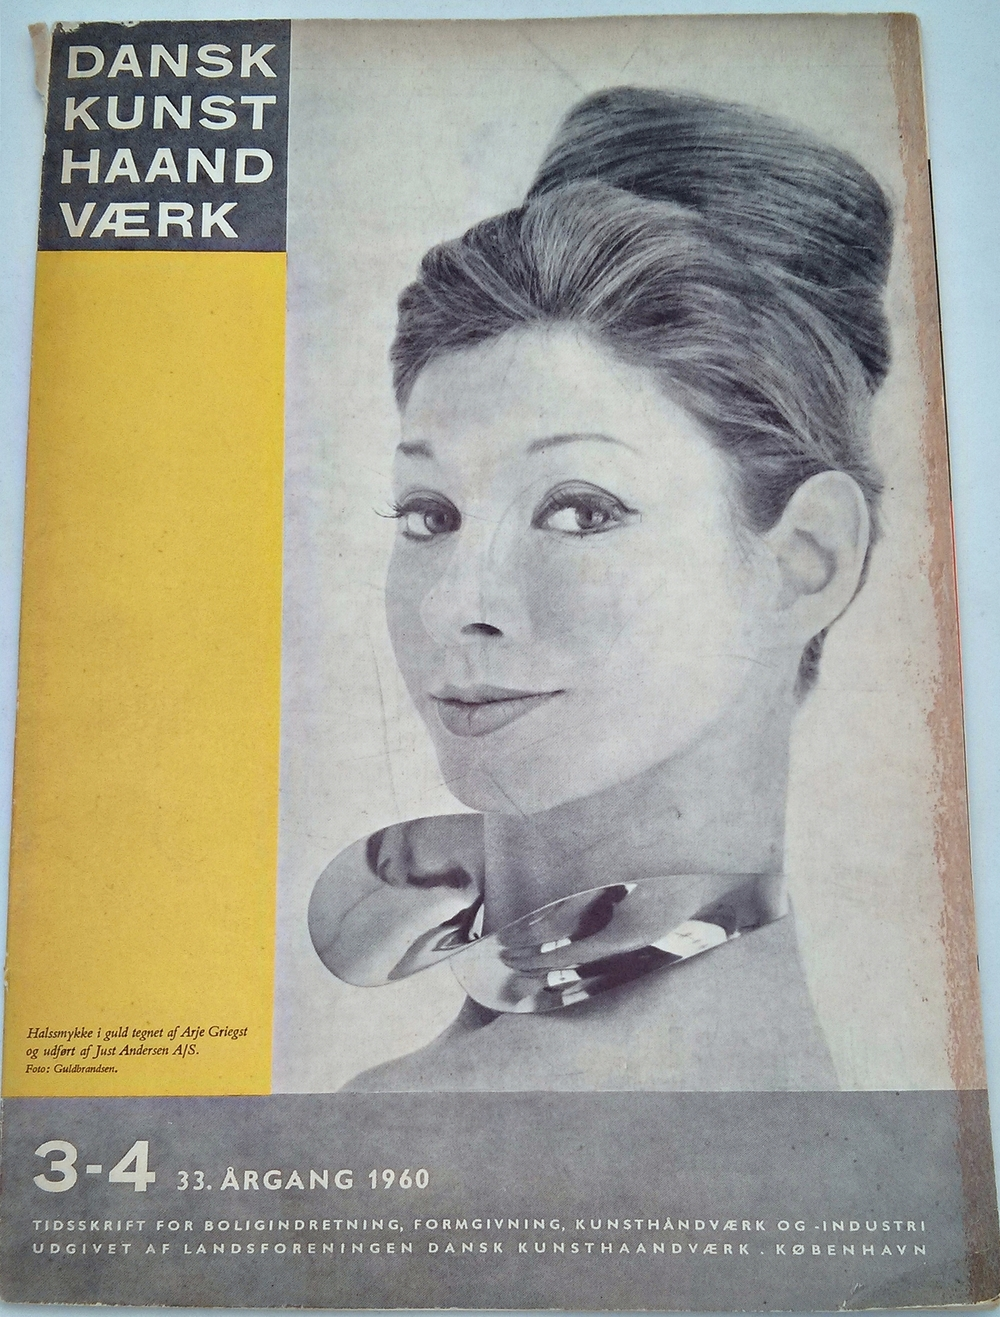 """Dansk Kunst Haandvaerk"" - Danish Crafts  The following excerpts come from a 1960 issue of the publication. The model on the cover is  wearing a beautiful neckband designed by Arje Griegst for Just Anderson"